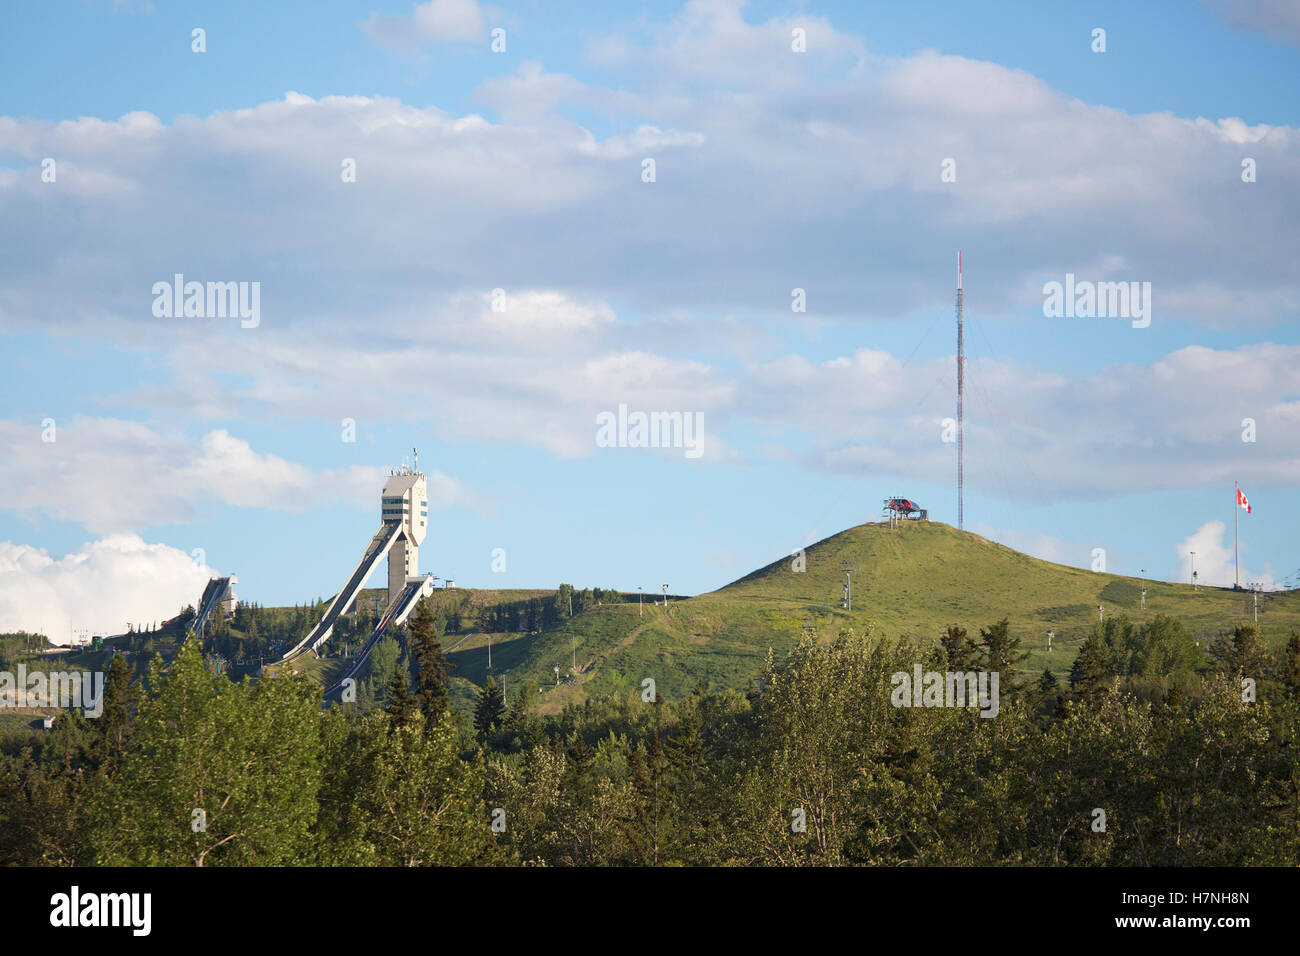 Canada Olympic Park (COP) with ski jump, venue for 1988 Olympics now used for athletic training and public recreation - Stock Image